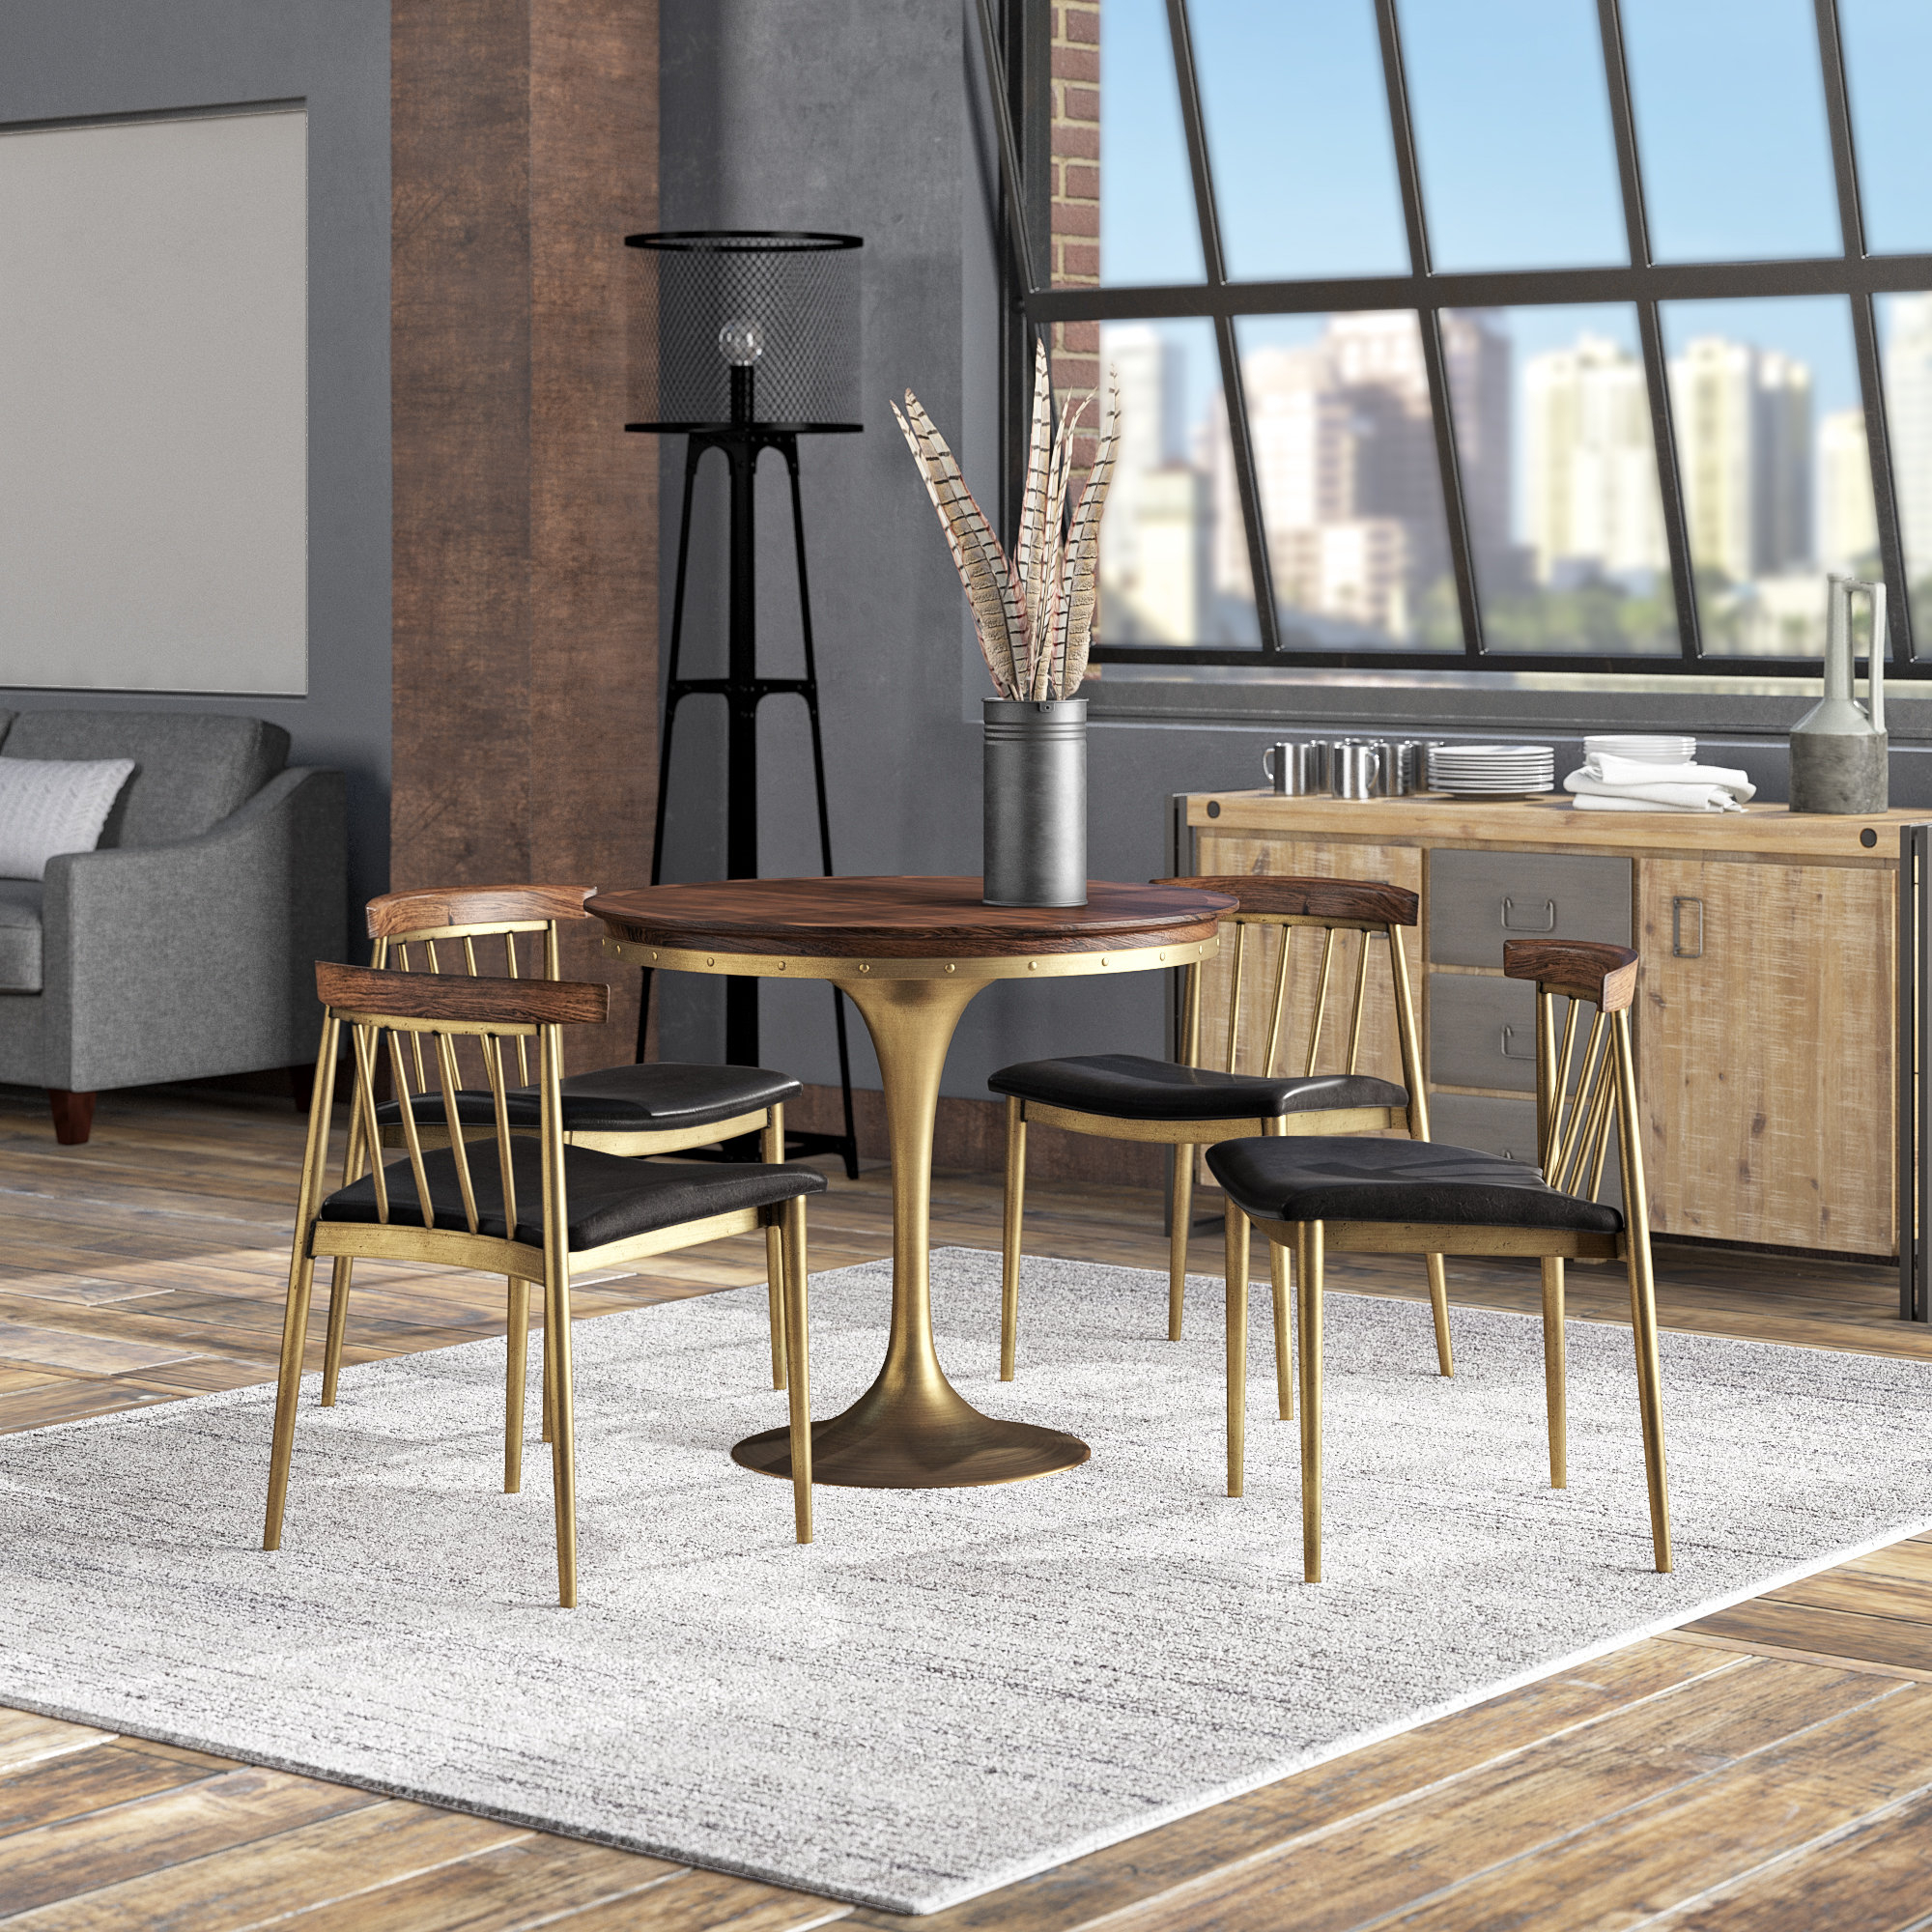 Loma Prieta 5 Piece Dining Set (View 19 of 25)